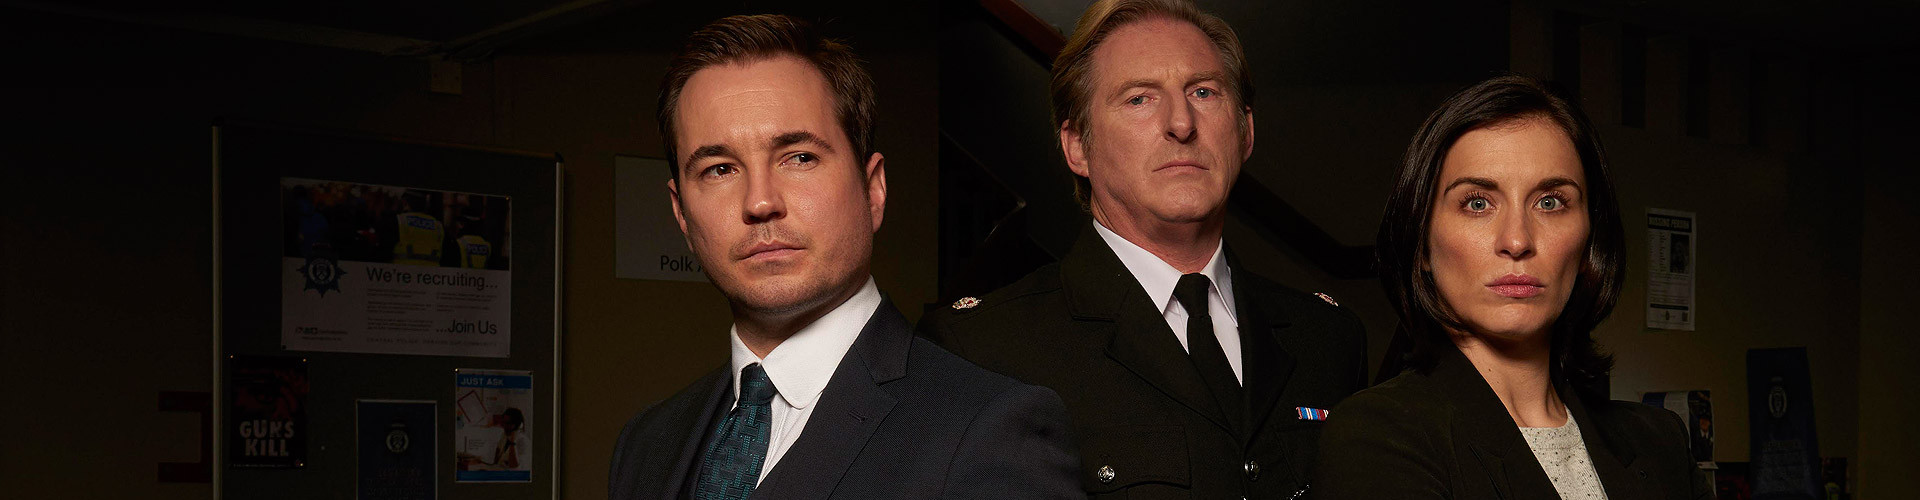 line-of-duty-series-4-finale-banner-1920x520.jpg